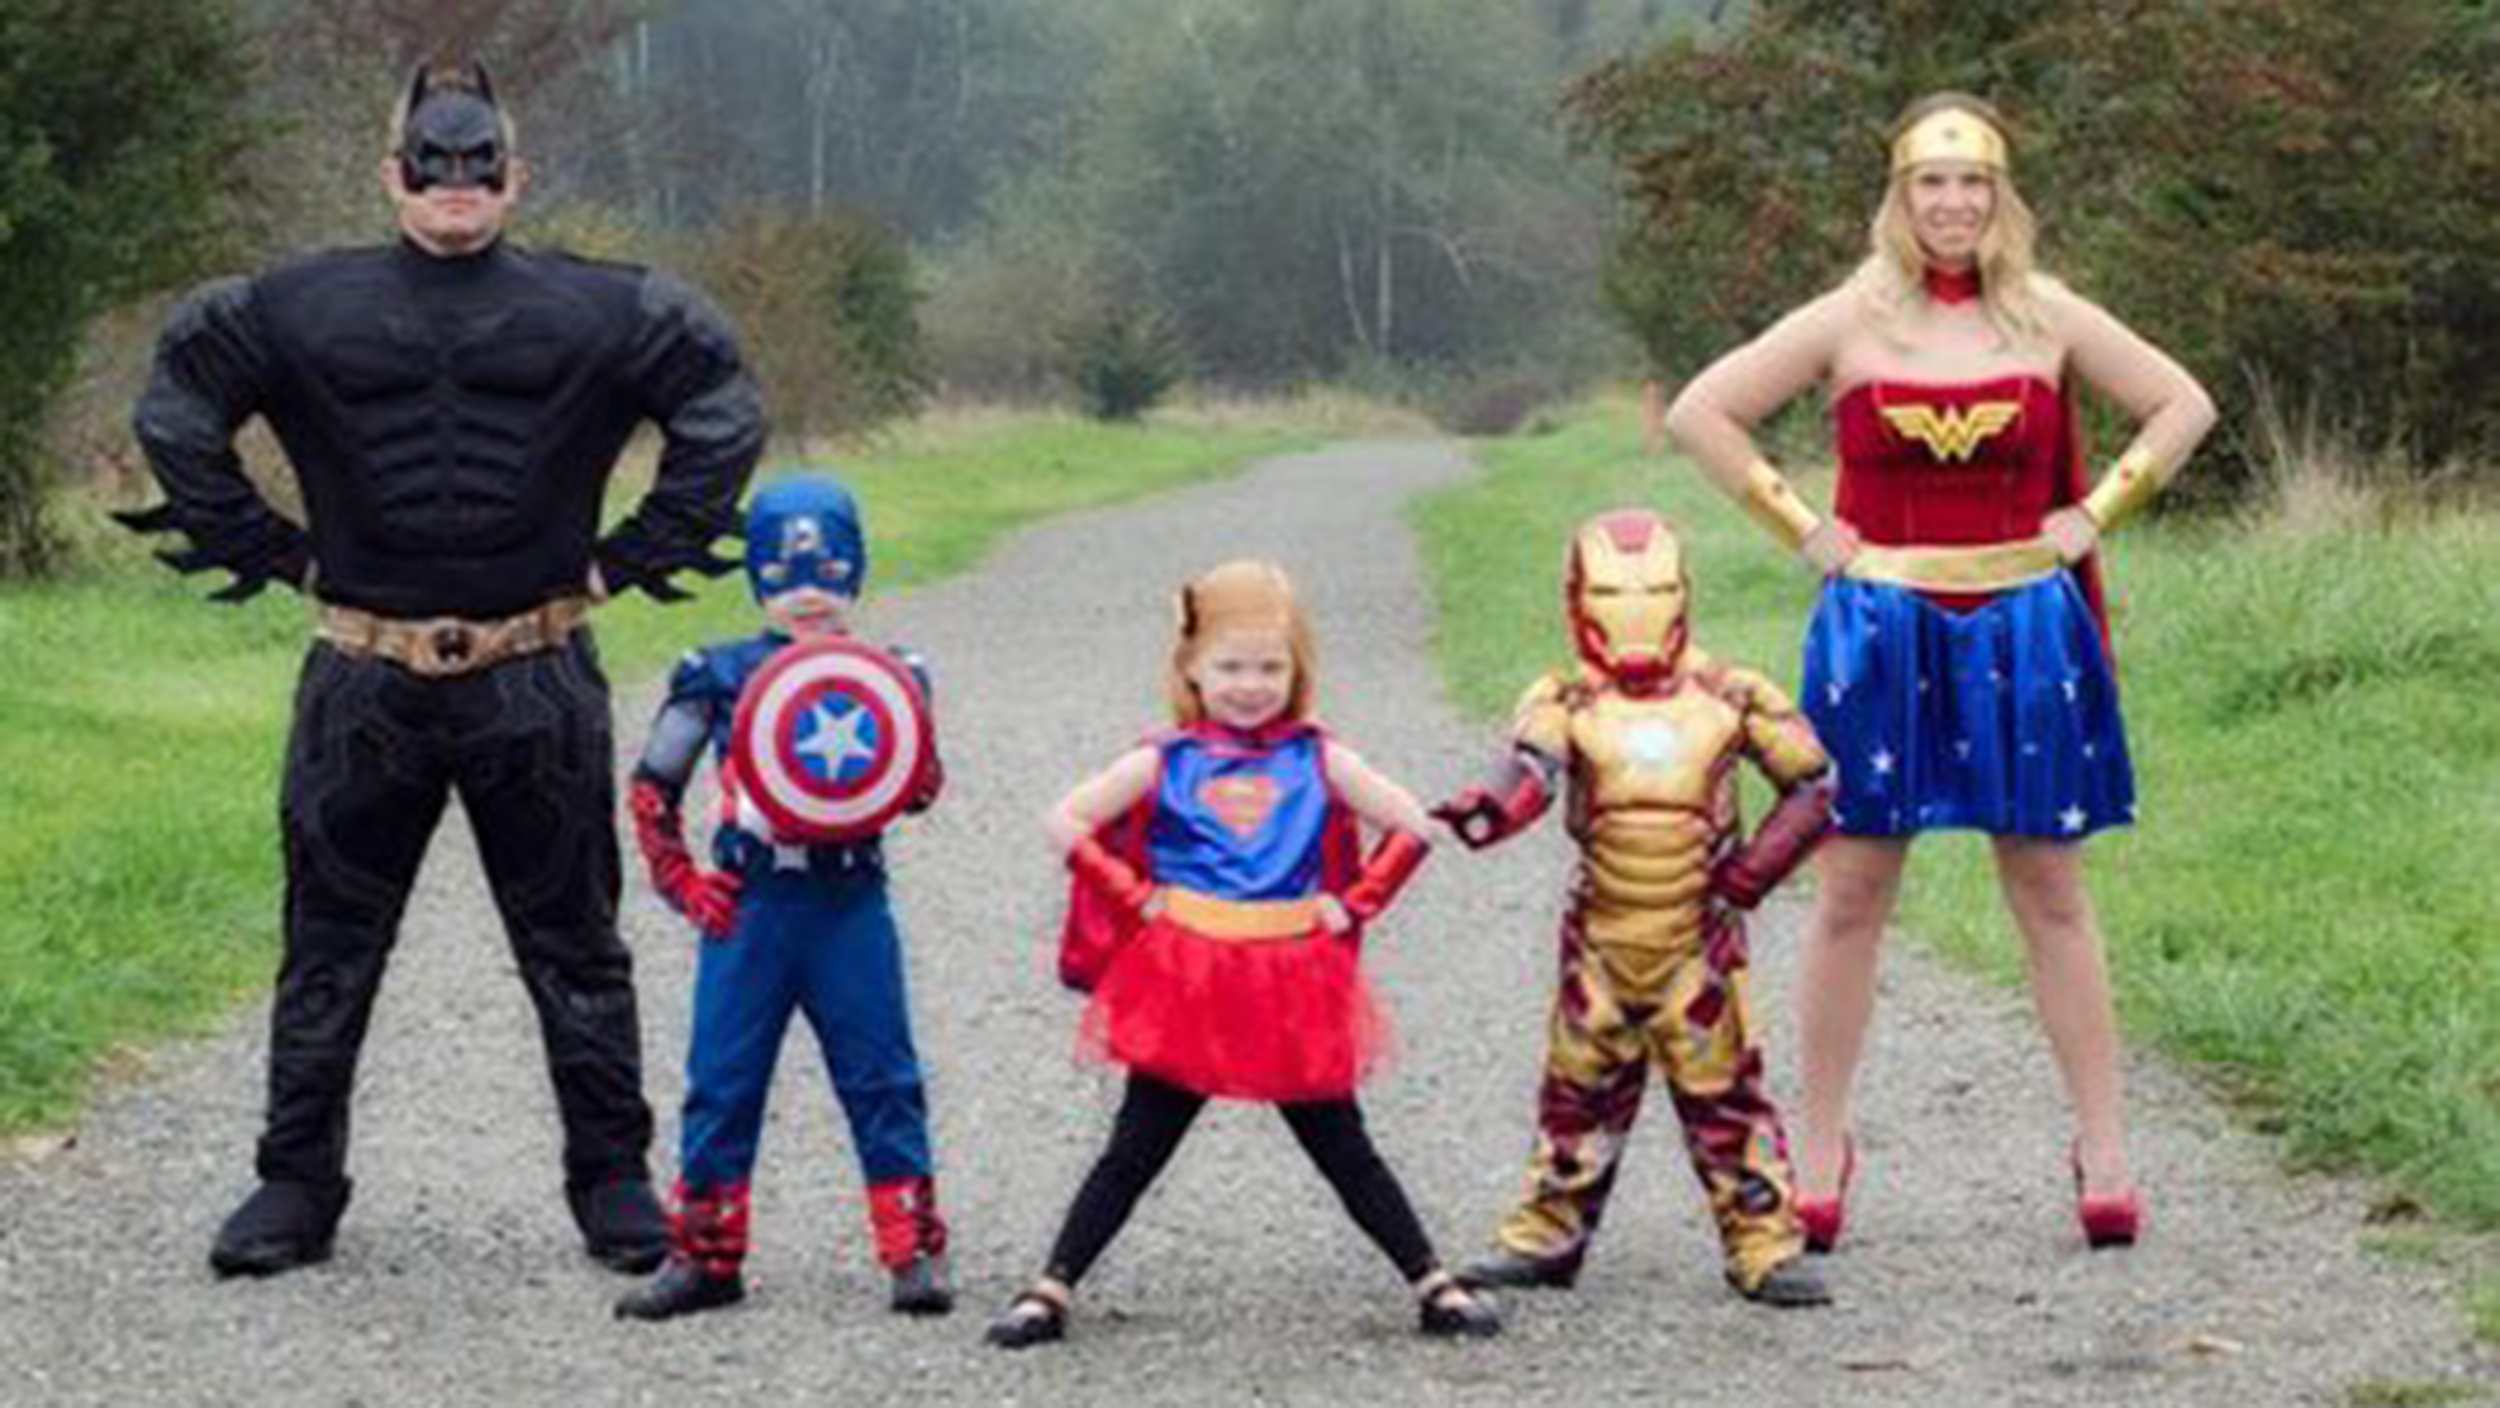 19 of the cutest family theme costumes for halloween todaycom - Family Halloween Costumes For 4